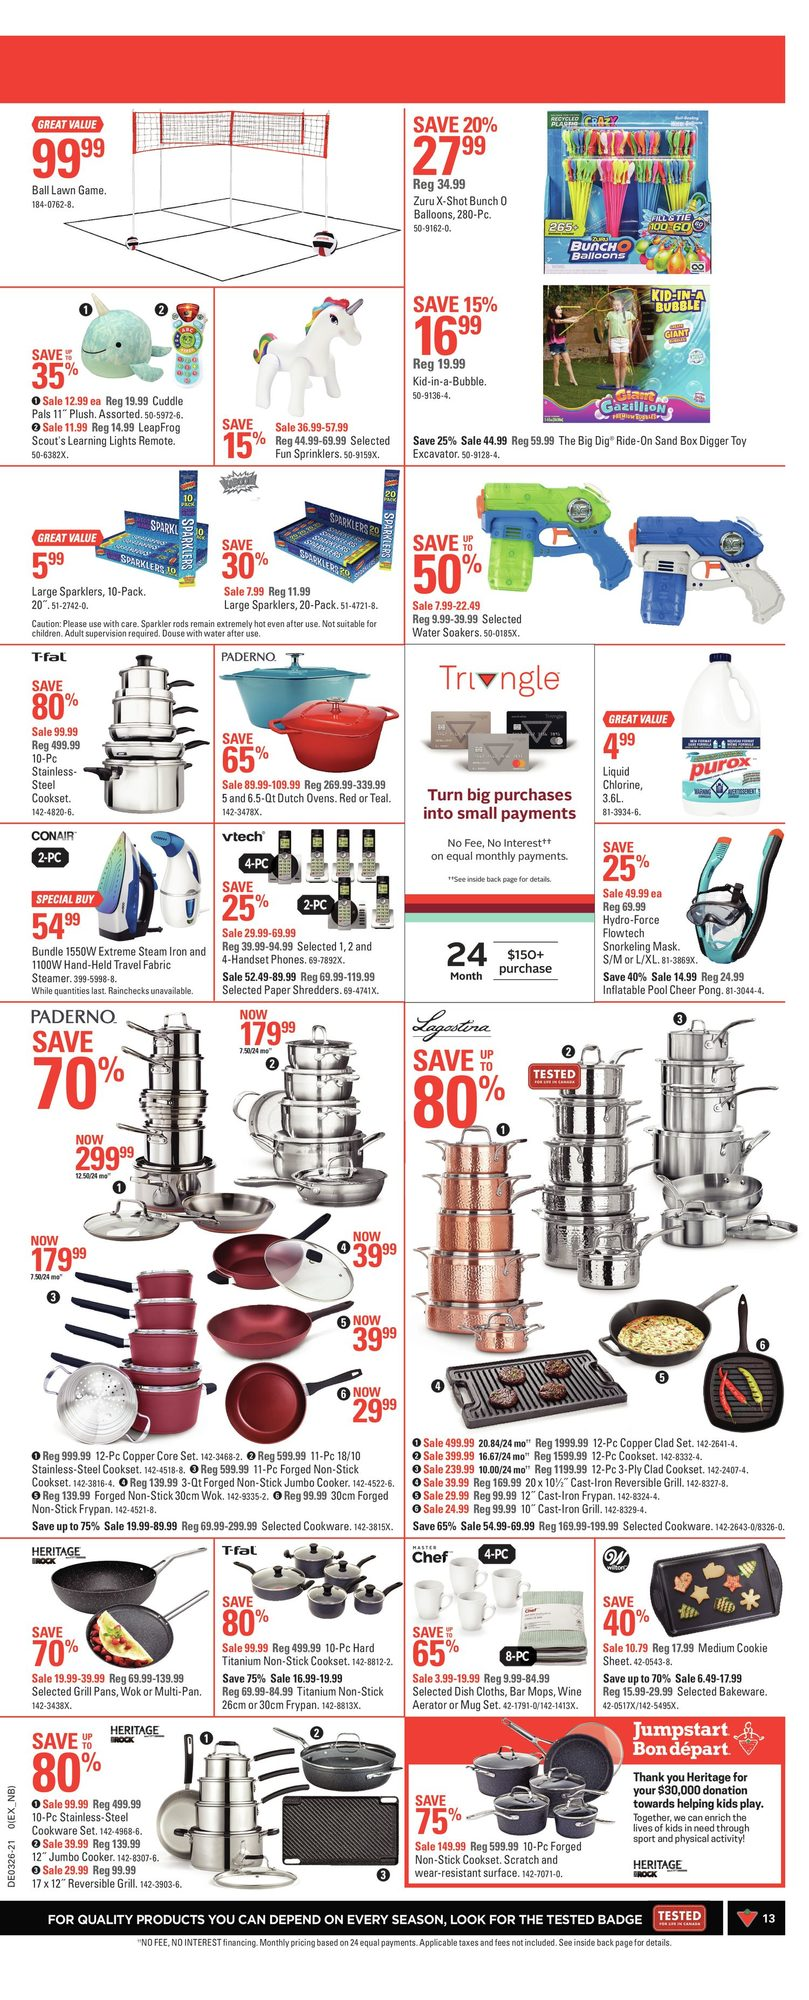 Canadian Tire - Weekly Flyer Specials - Page 19